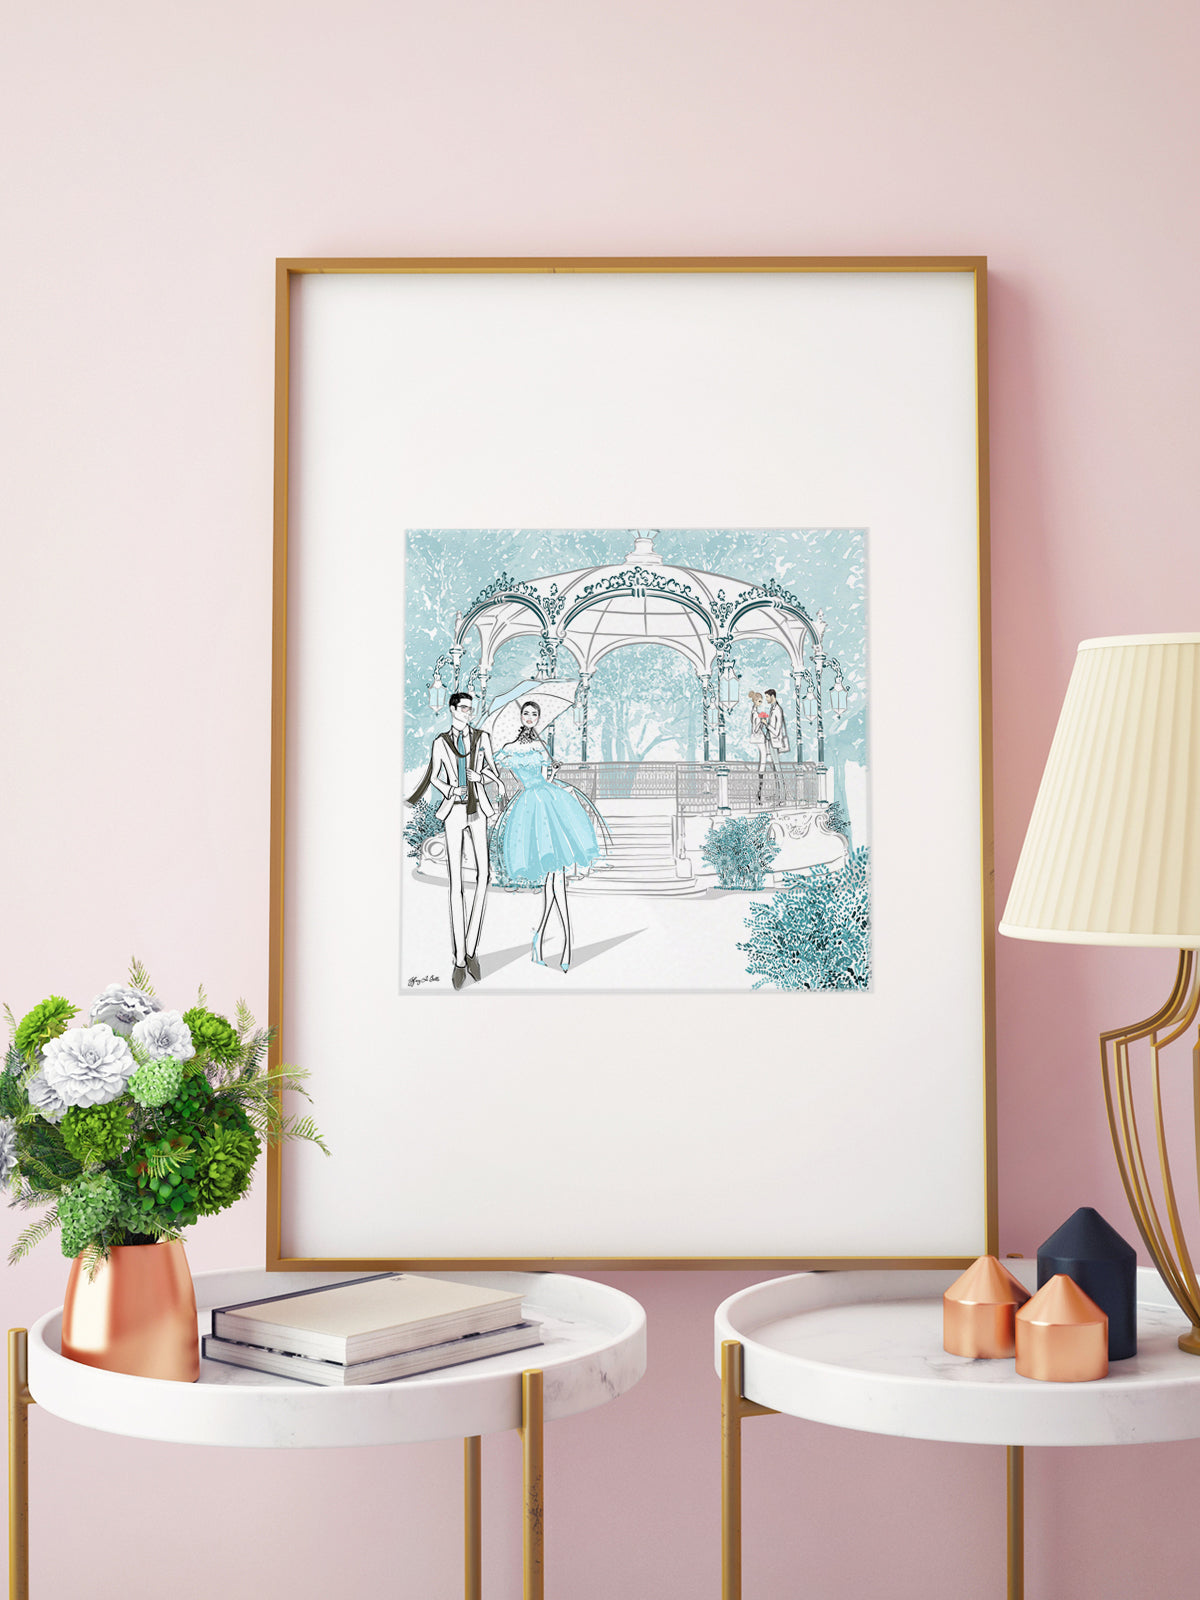 Young Lovers - Illustration - Limited Edition Print